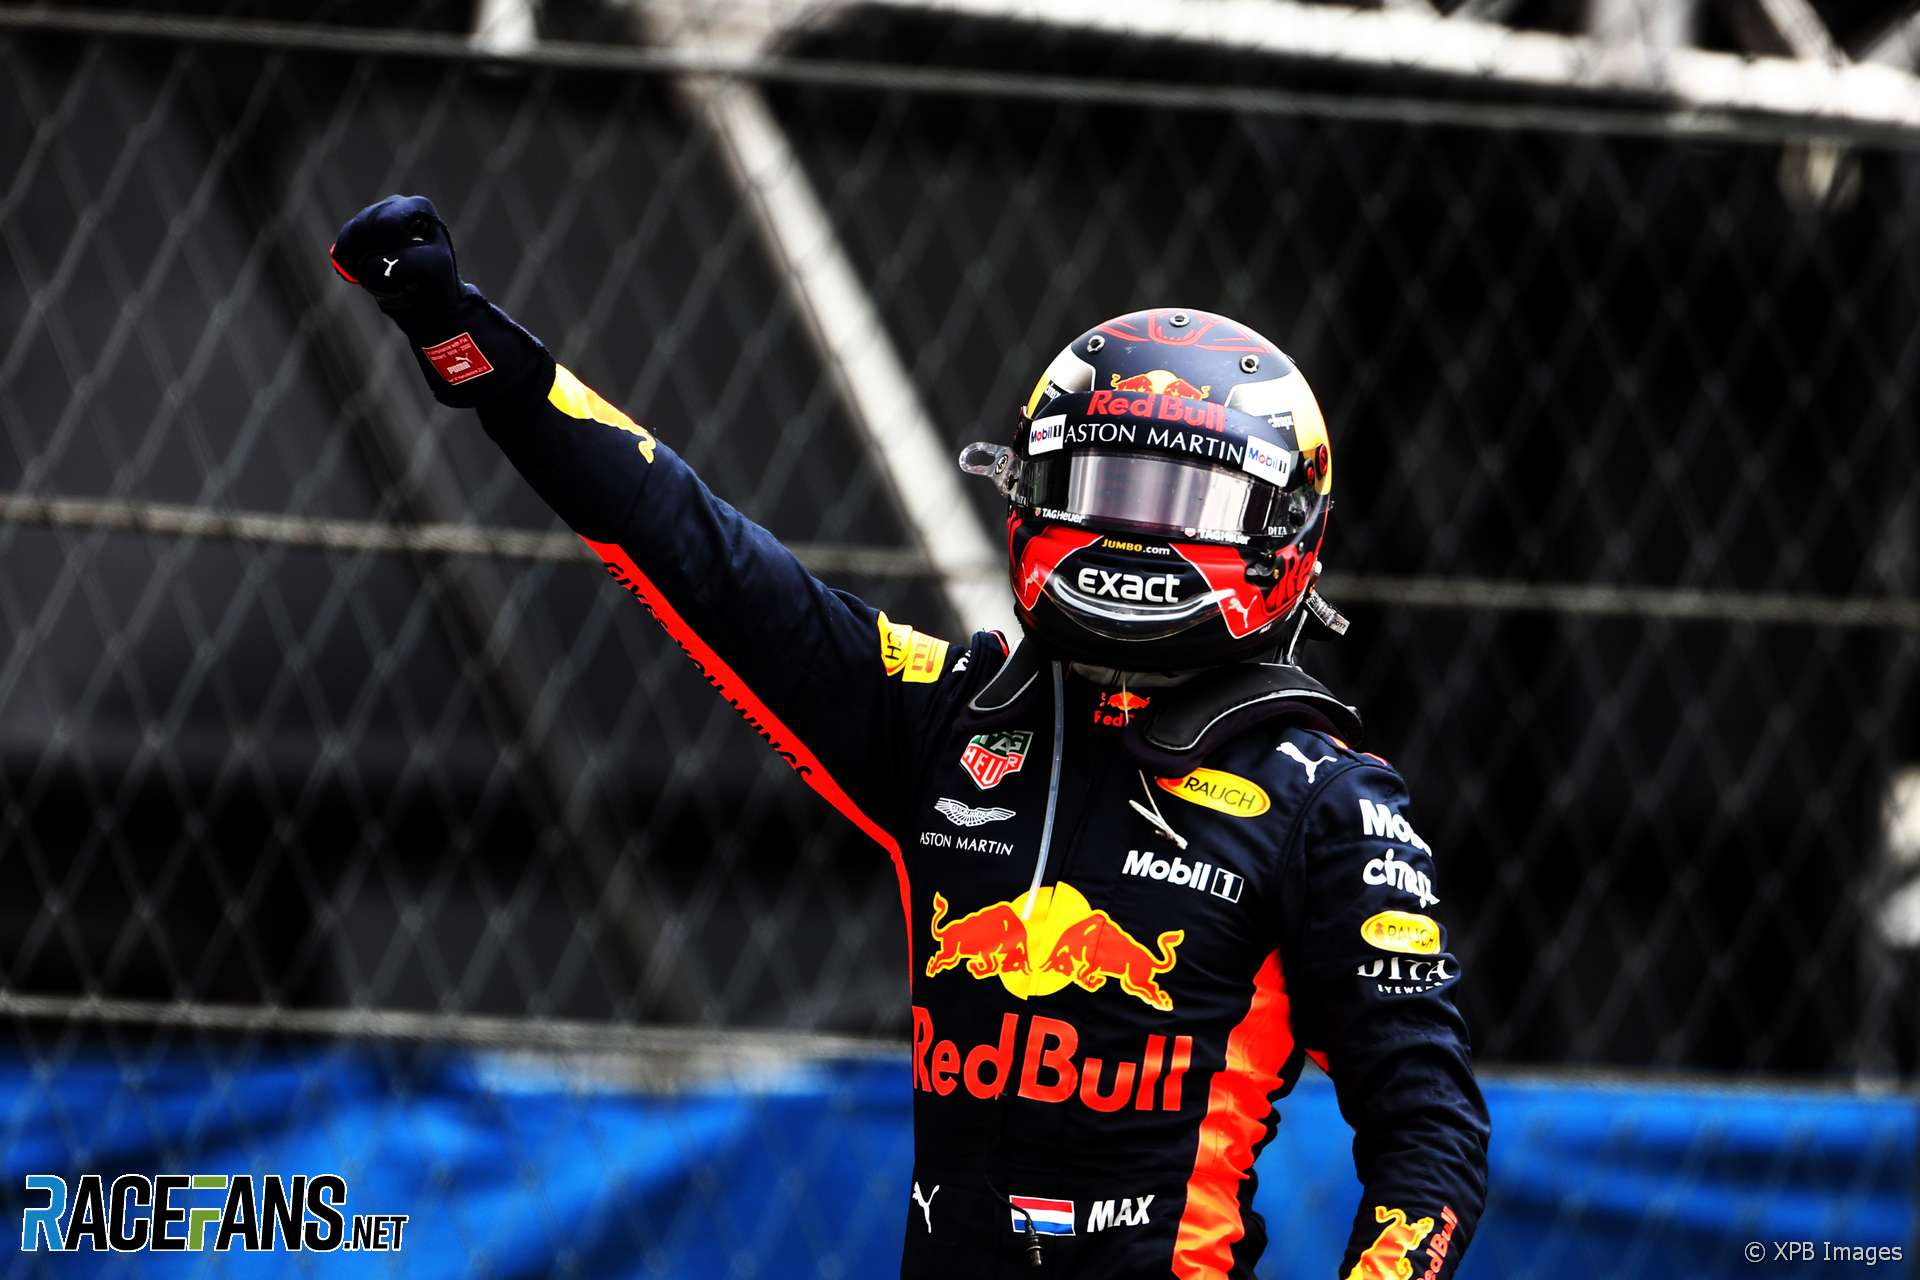 Max Verstappen, Red Bull, Circuit of the Americas, 2018 · RaceFans